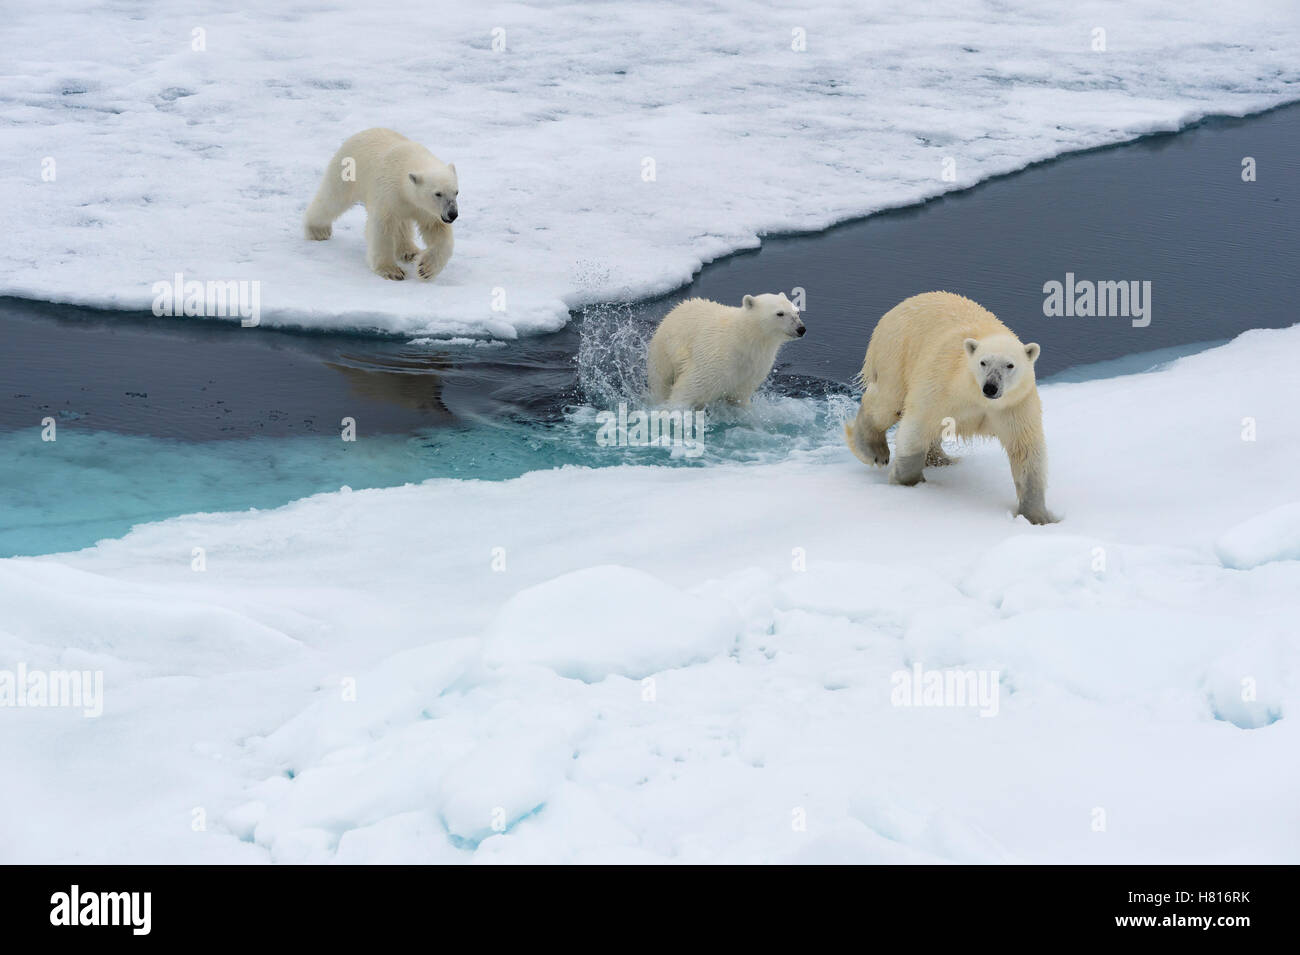 Mother polar bear (Ursus maritimus) with two cubs swimming and jumping over an open ice floe, Svalbard archipelago Stock Photo